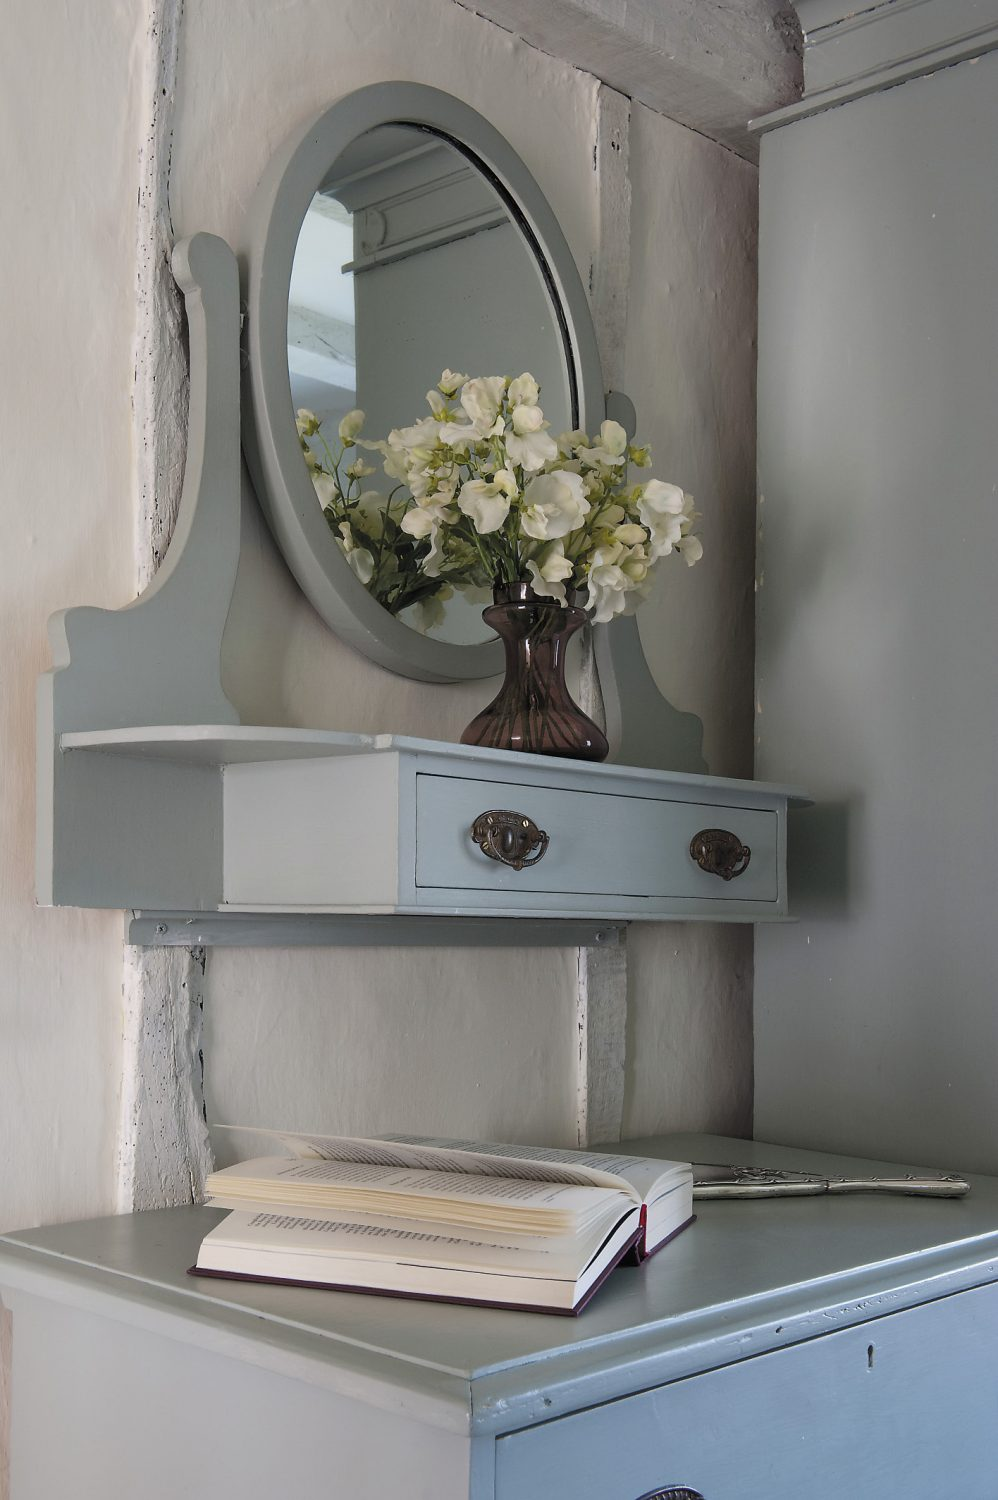 The cool Gustavian grey-blue - Farrow and Ball's Light Blue - in which they have been painted makes the room feel much more spacious